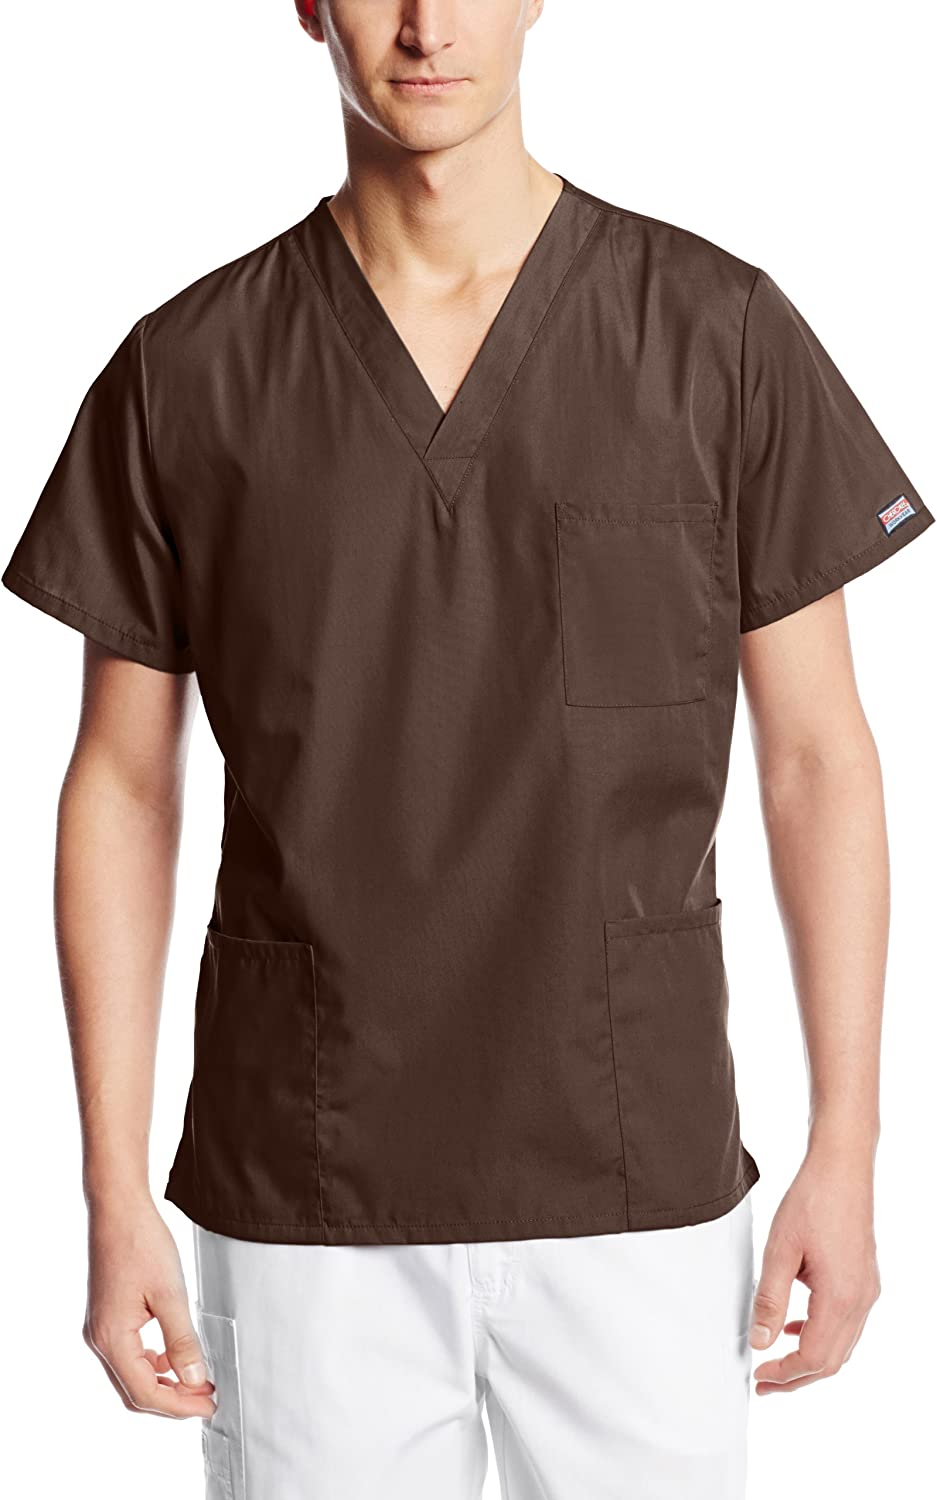 Cherokee Originals Unisex V-Neck Scrubs Top, Chocolate, X-Large: Medical Scrubs Shirts: Clothing